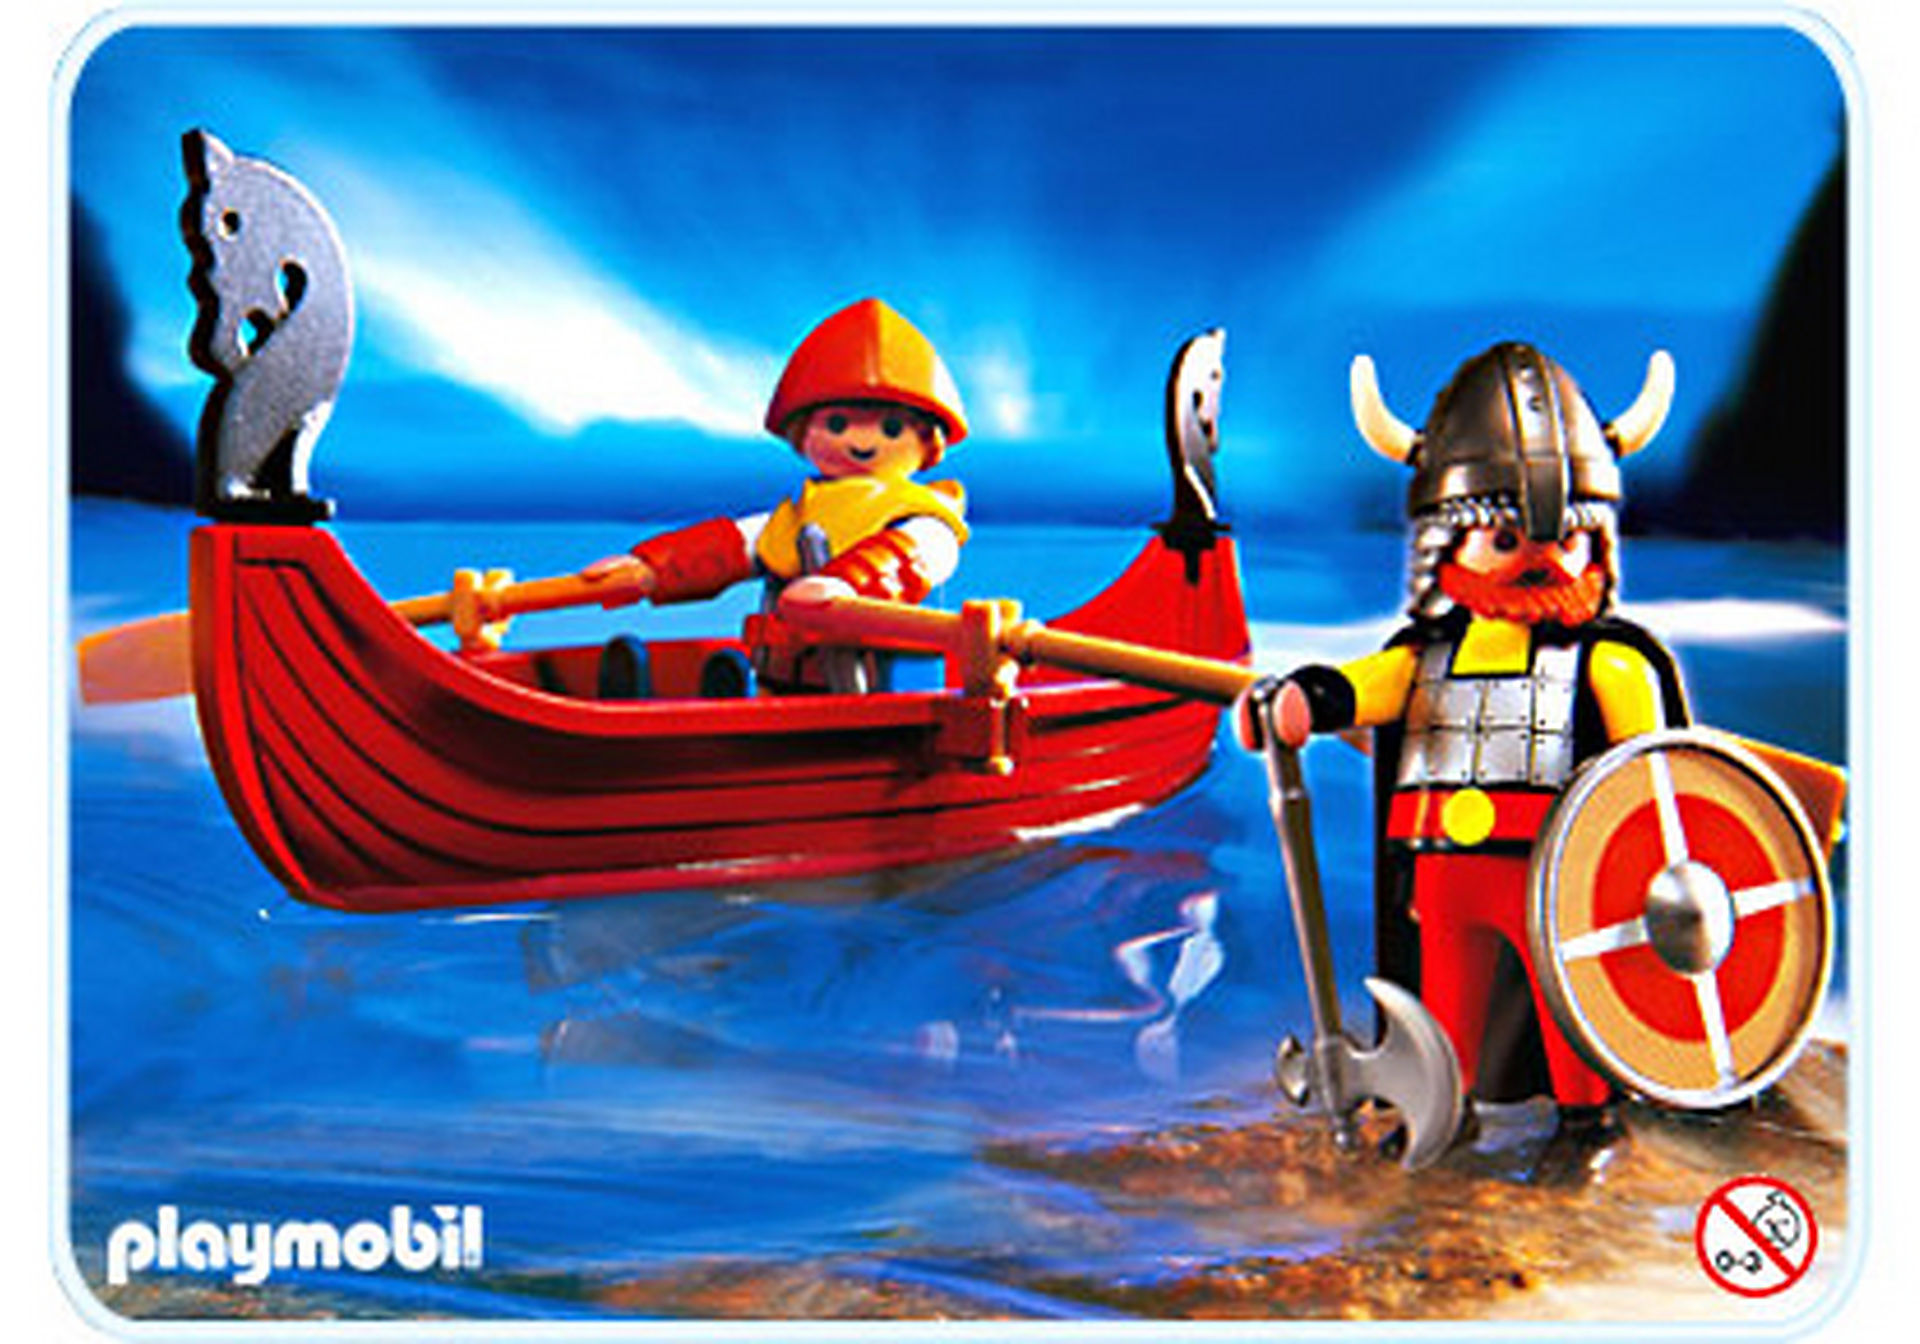 http://media.playmobil.com/i/playmobil/3156-A_product_detail/Wikingerboot